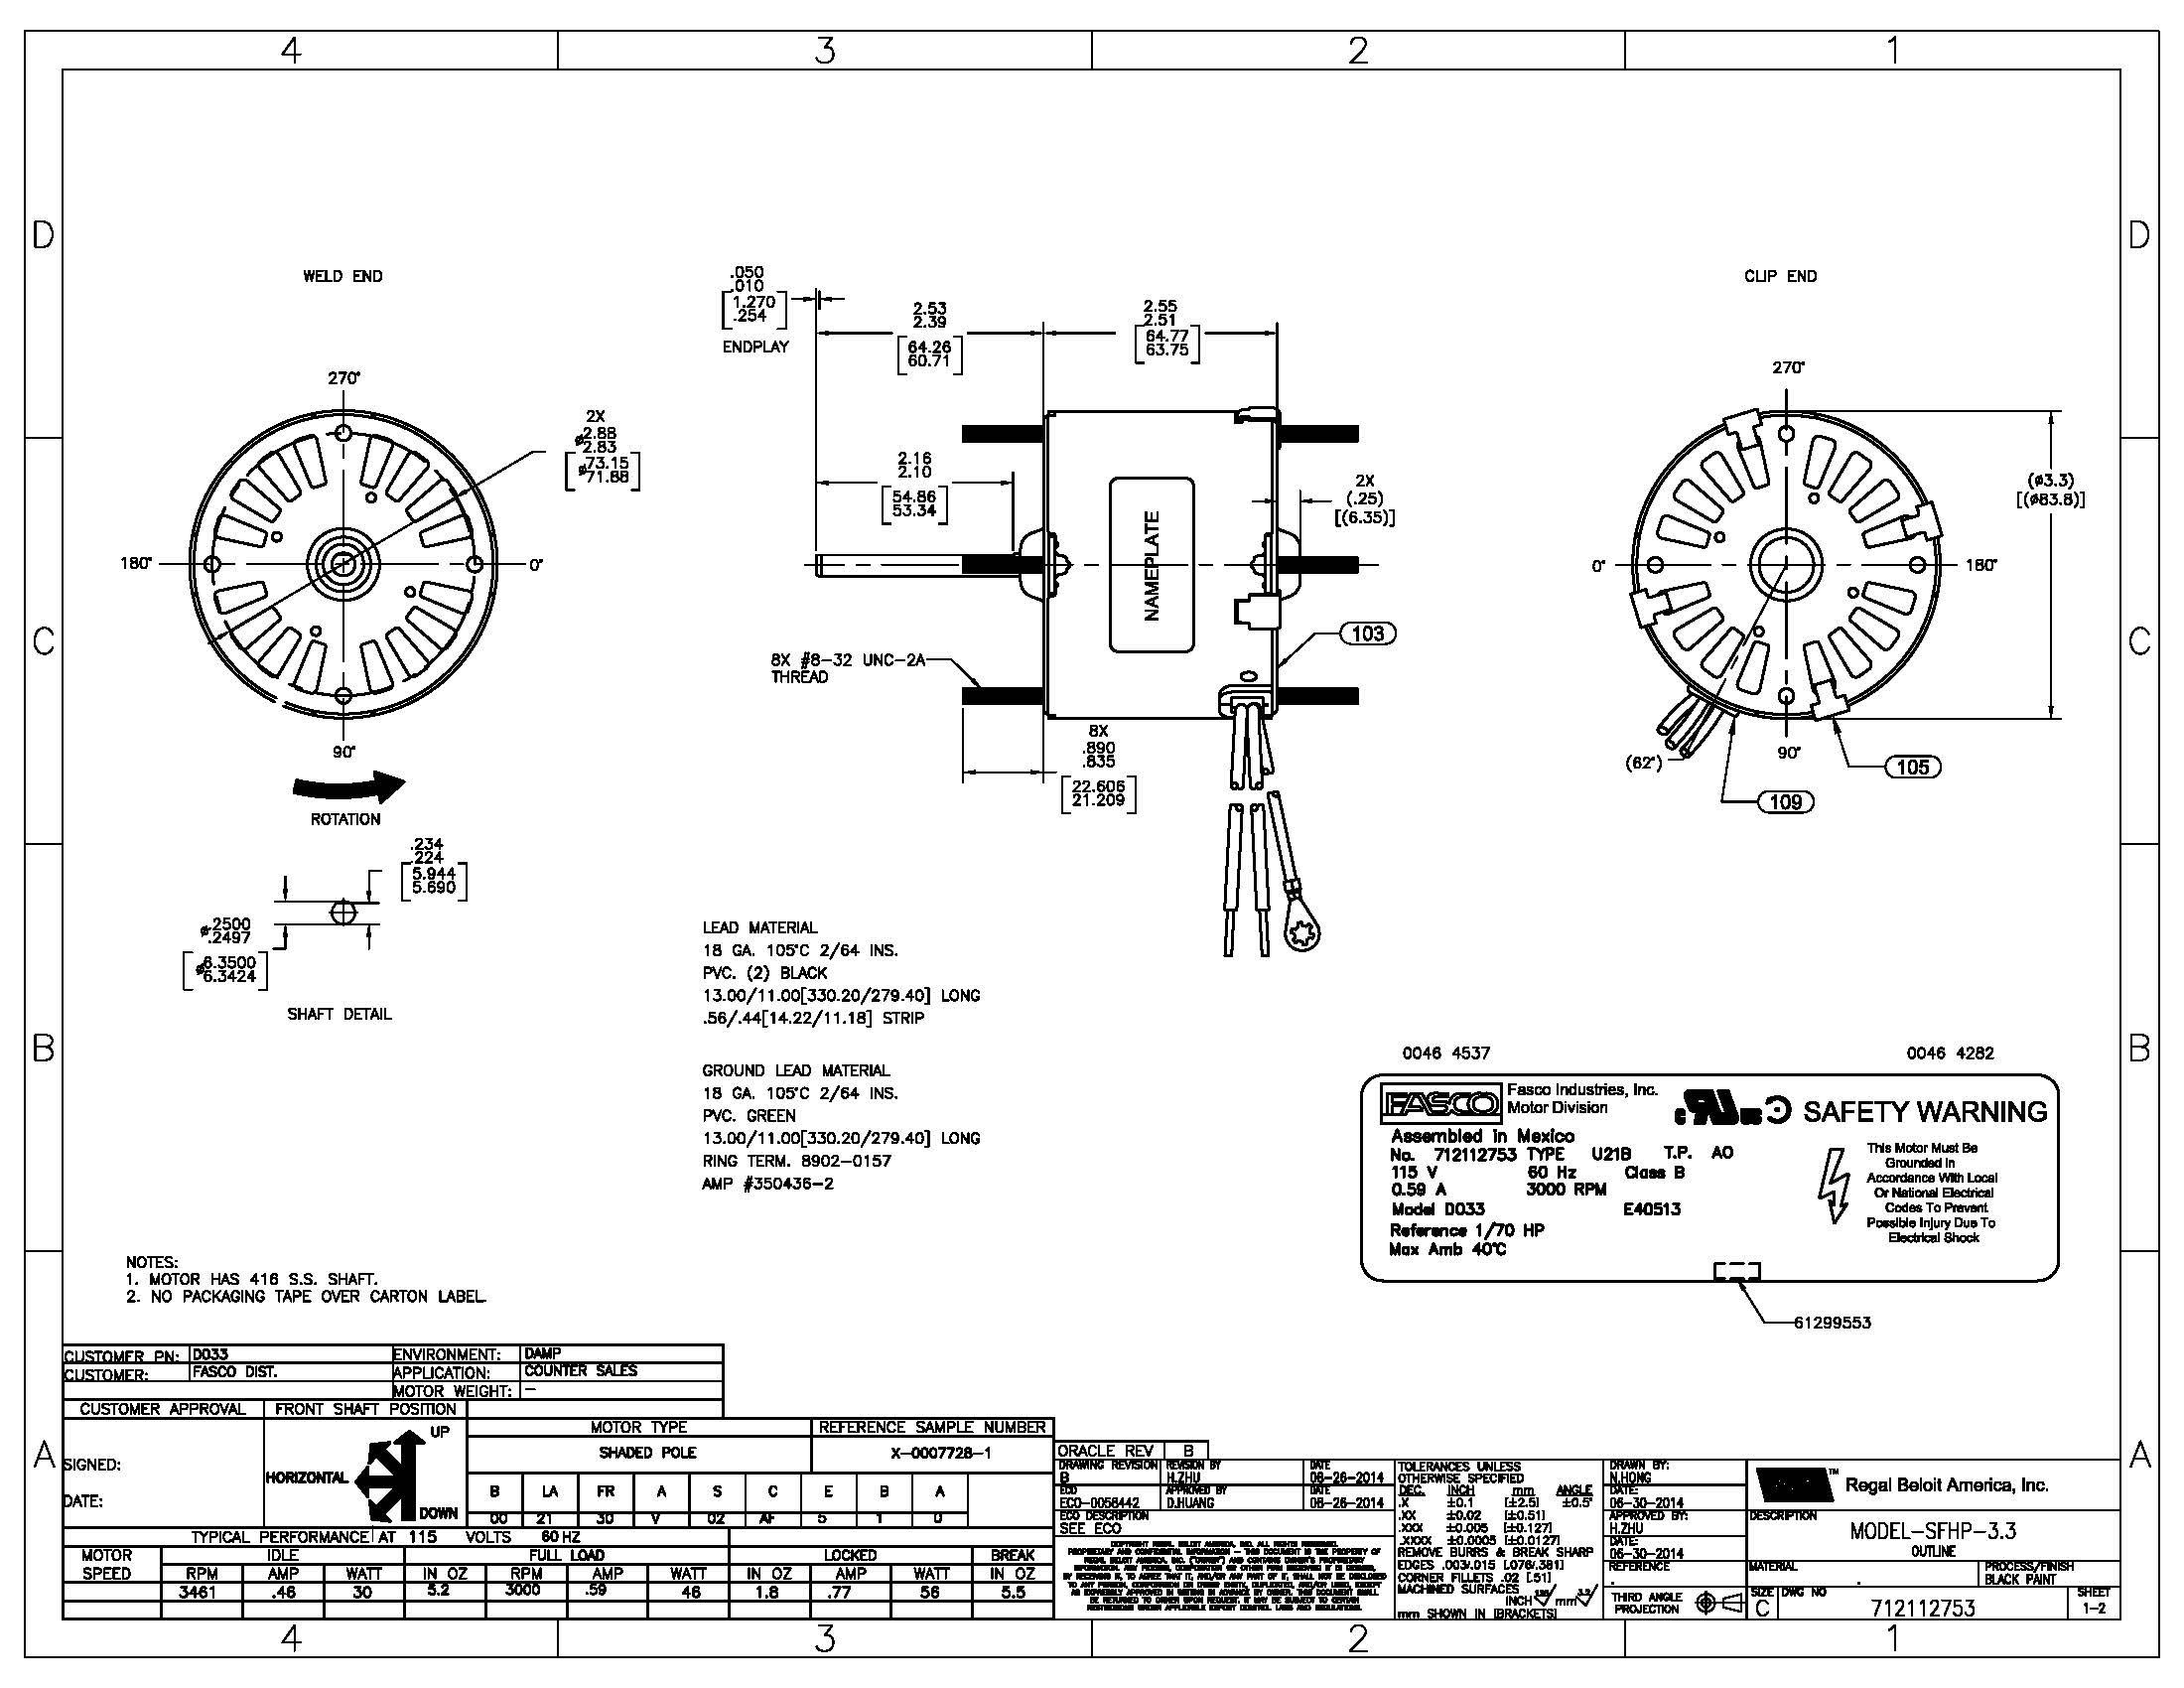 fasco blower motor wiring diagram Collection-Hvac Motor Wiring Diagram New Wiring Diagram for Fasco Blower Motor Fresh Wiring Diagram Shaded 18-g